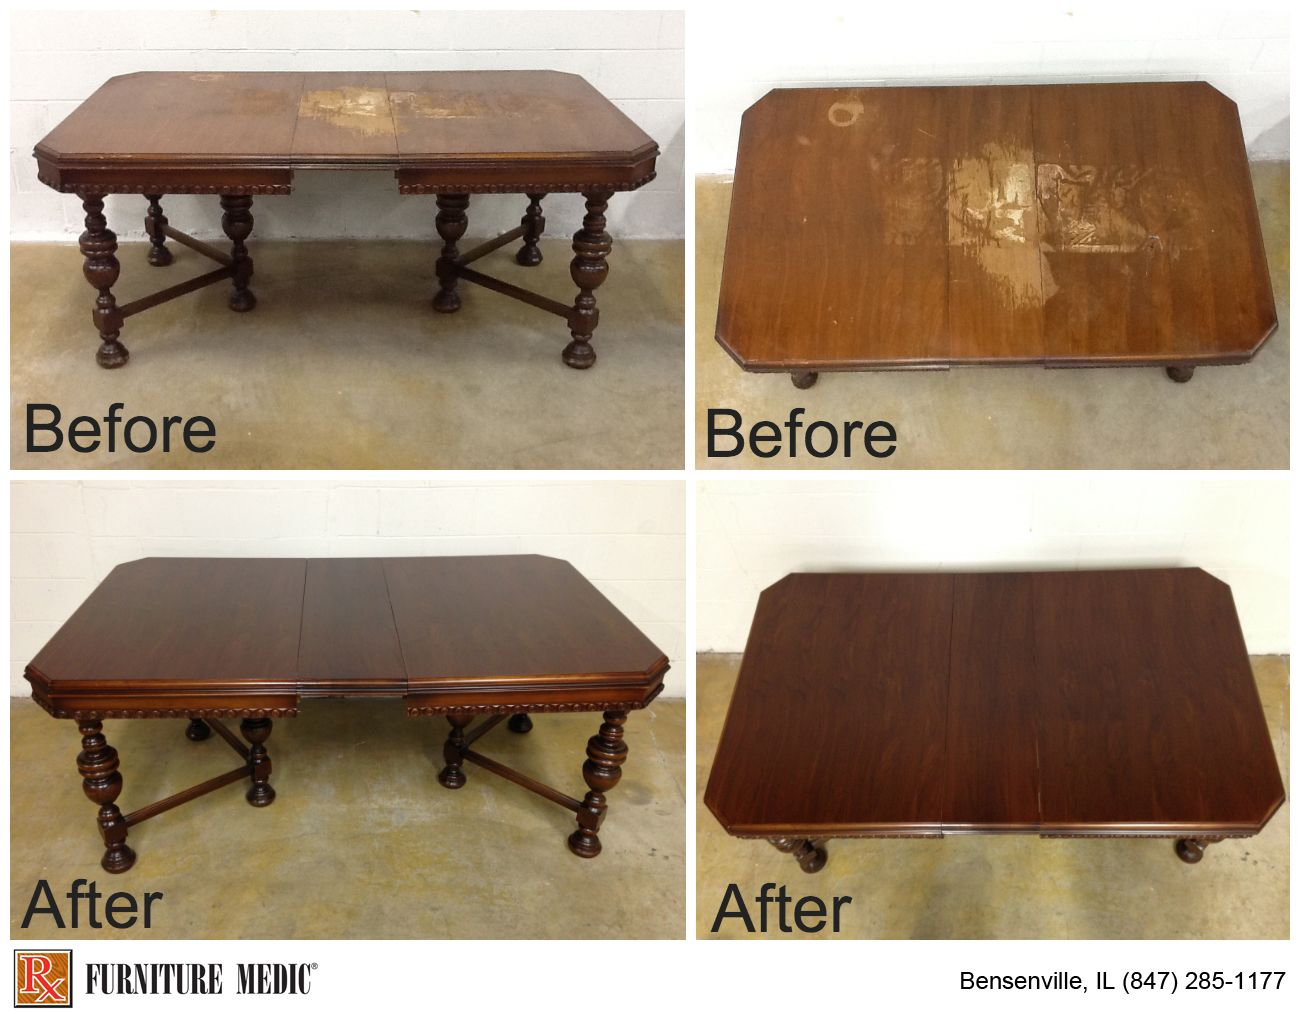 Restored And Refinished Dining Room Table That Had Severe Water